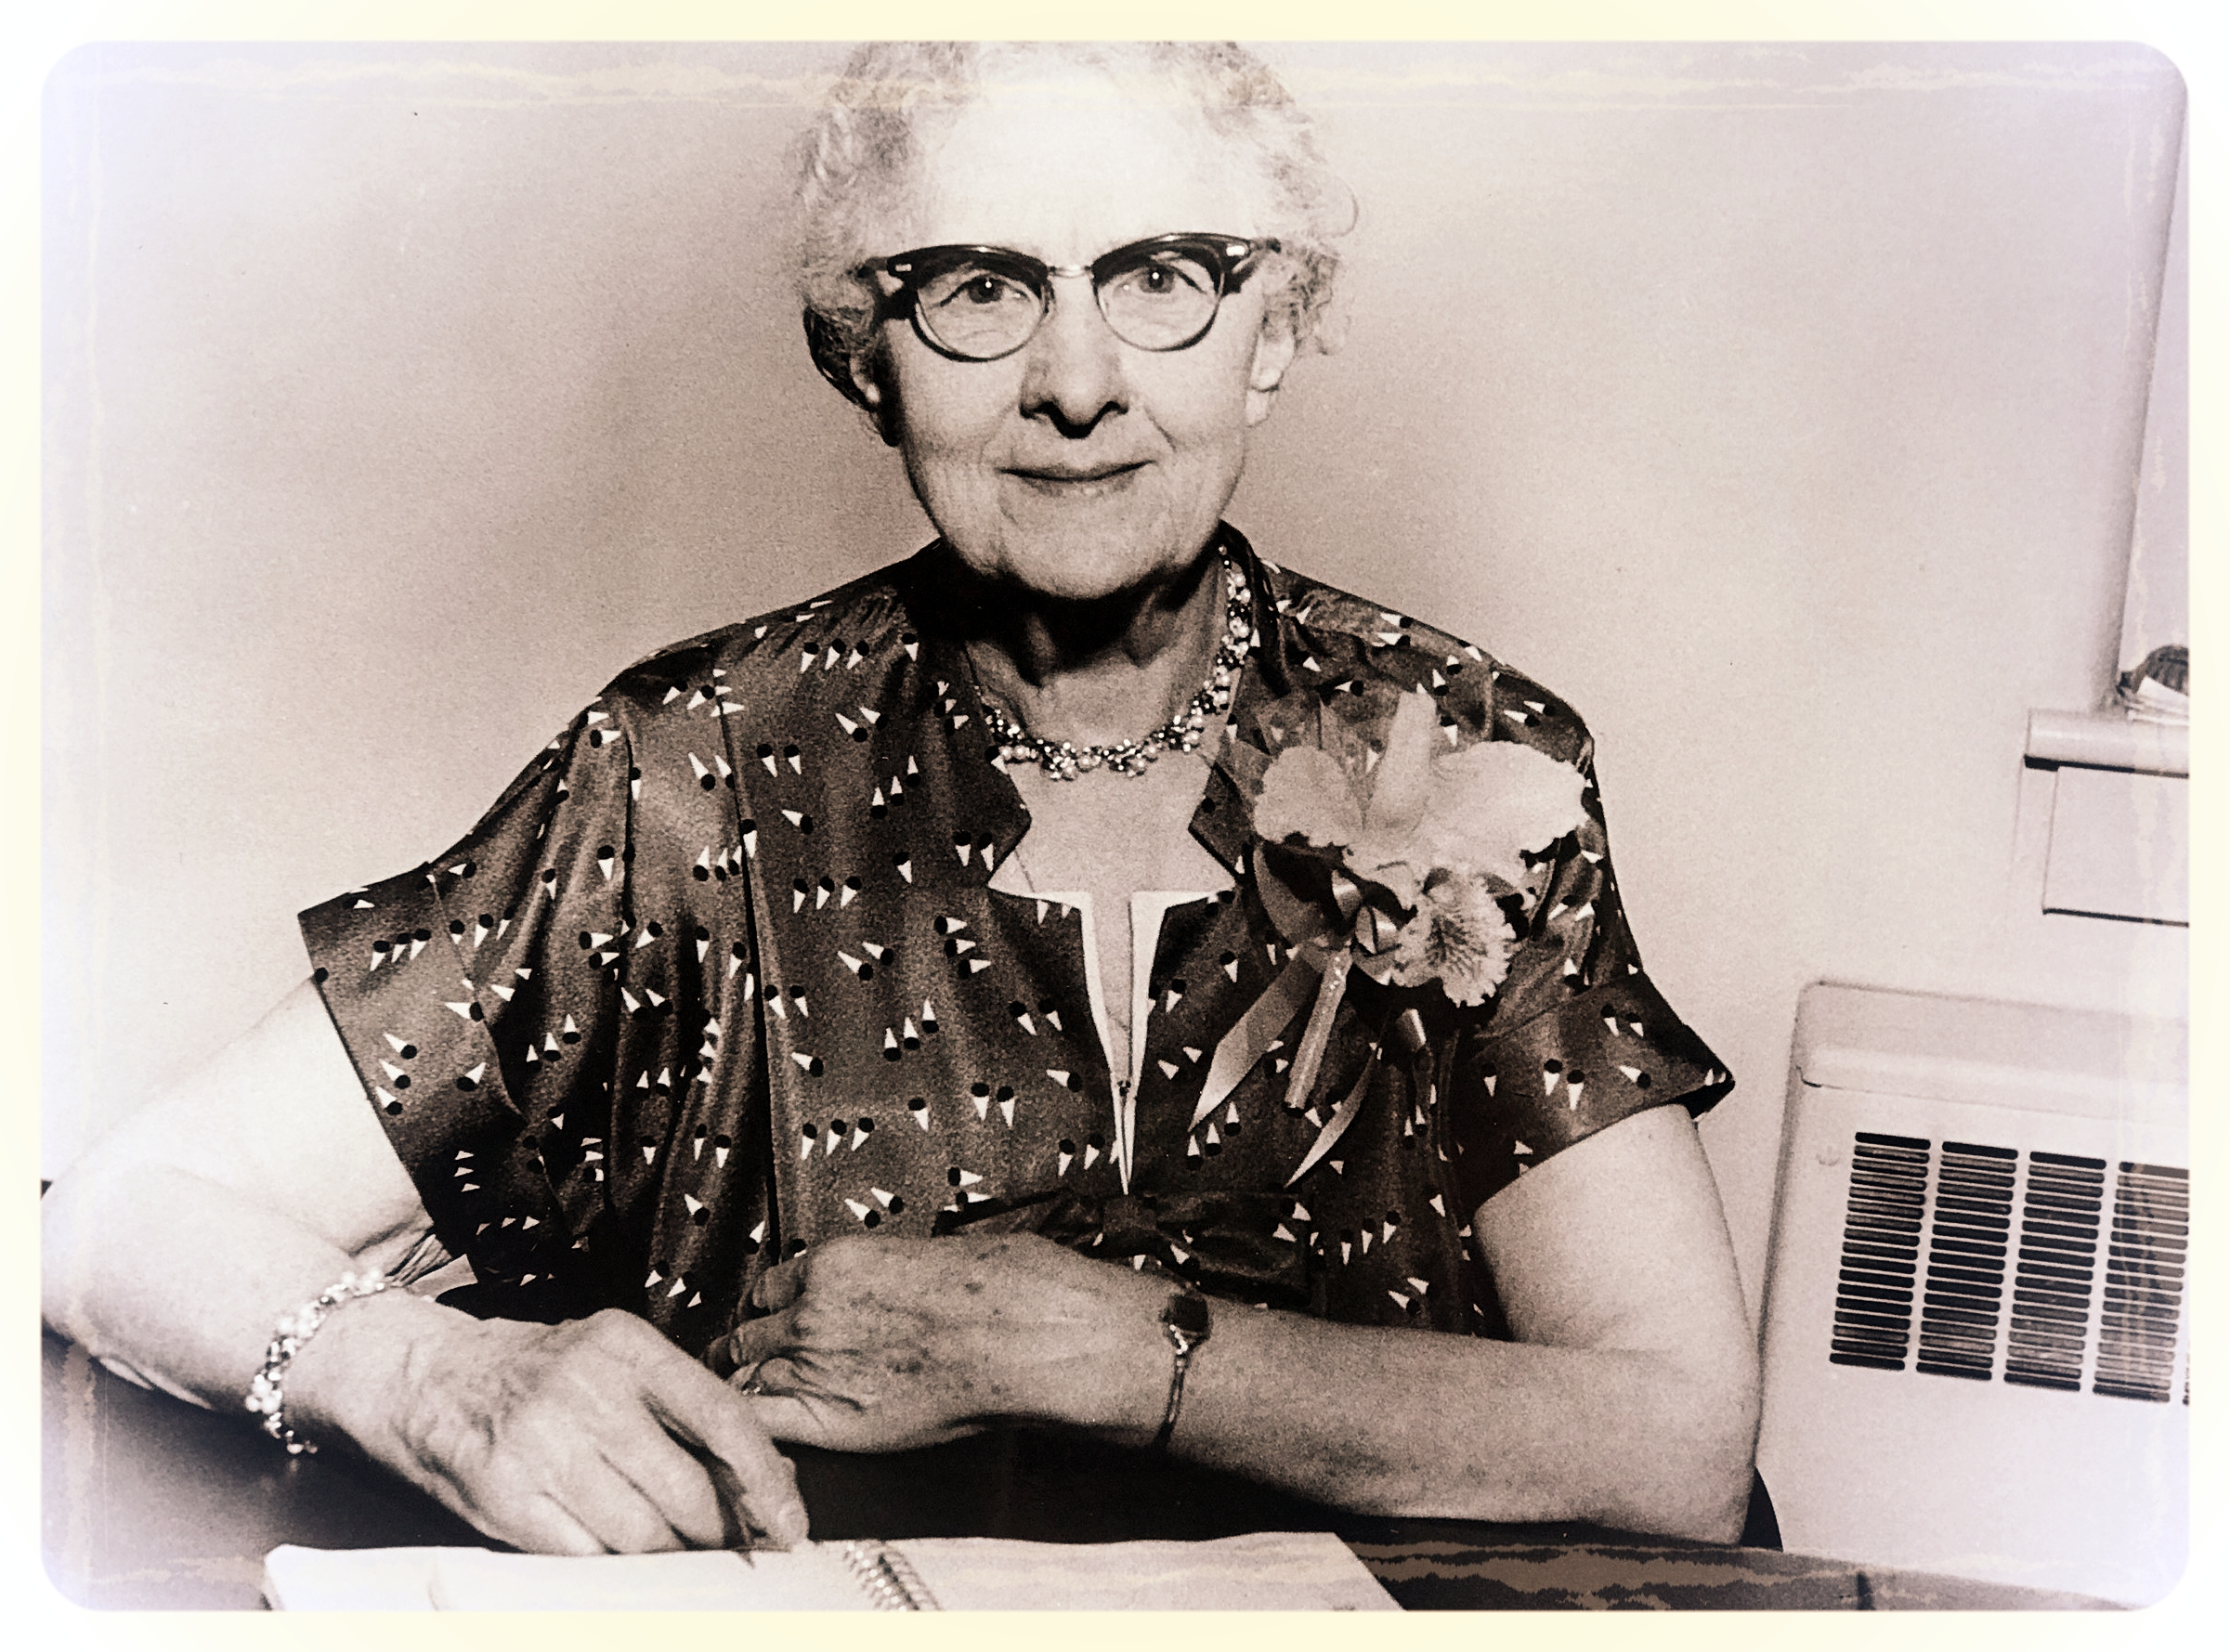 Miss Bess Rosenzweig - Private secretary to Fr. Earl V Sheridan between 1941 and 1958